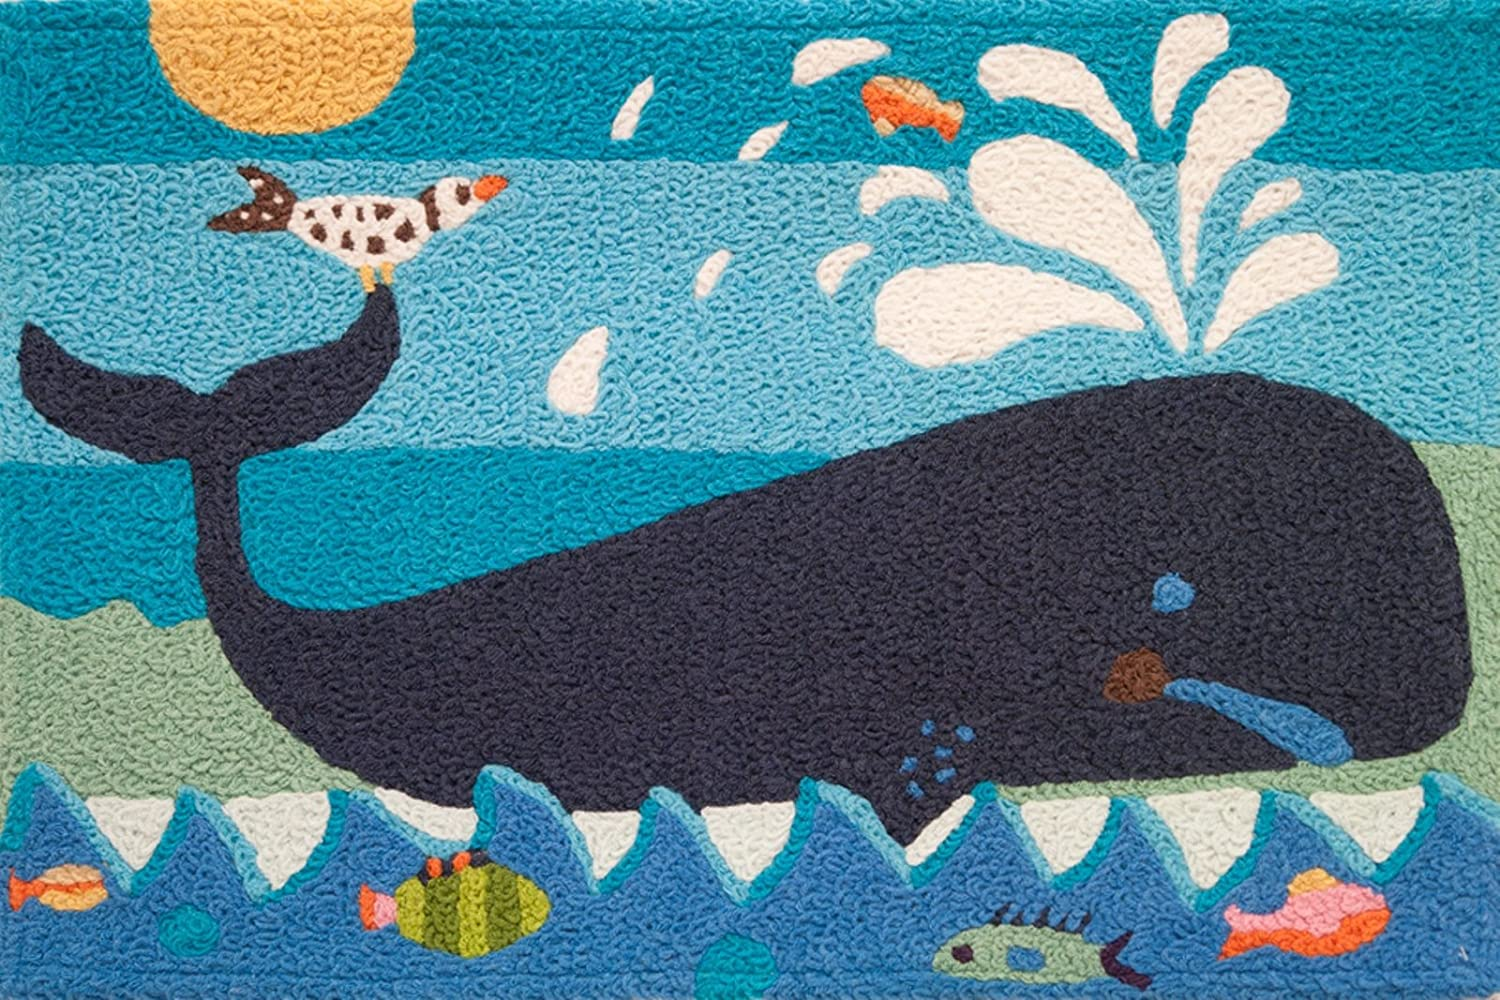 - Amazon.com : Jellybean Whale & Friends Area Rug : Patio, Lawn & Garden